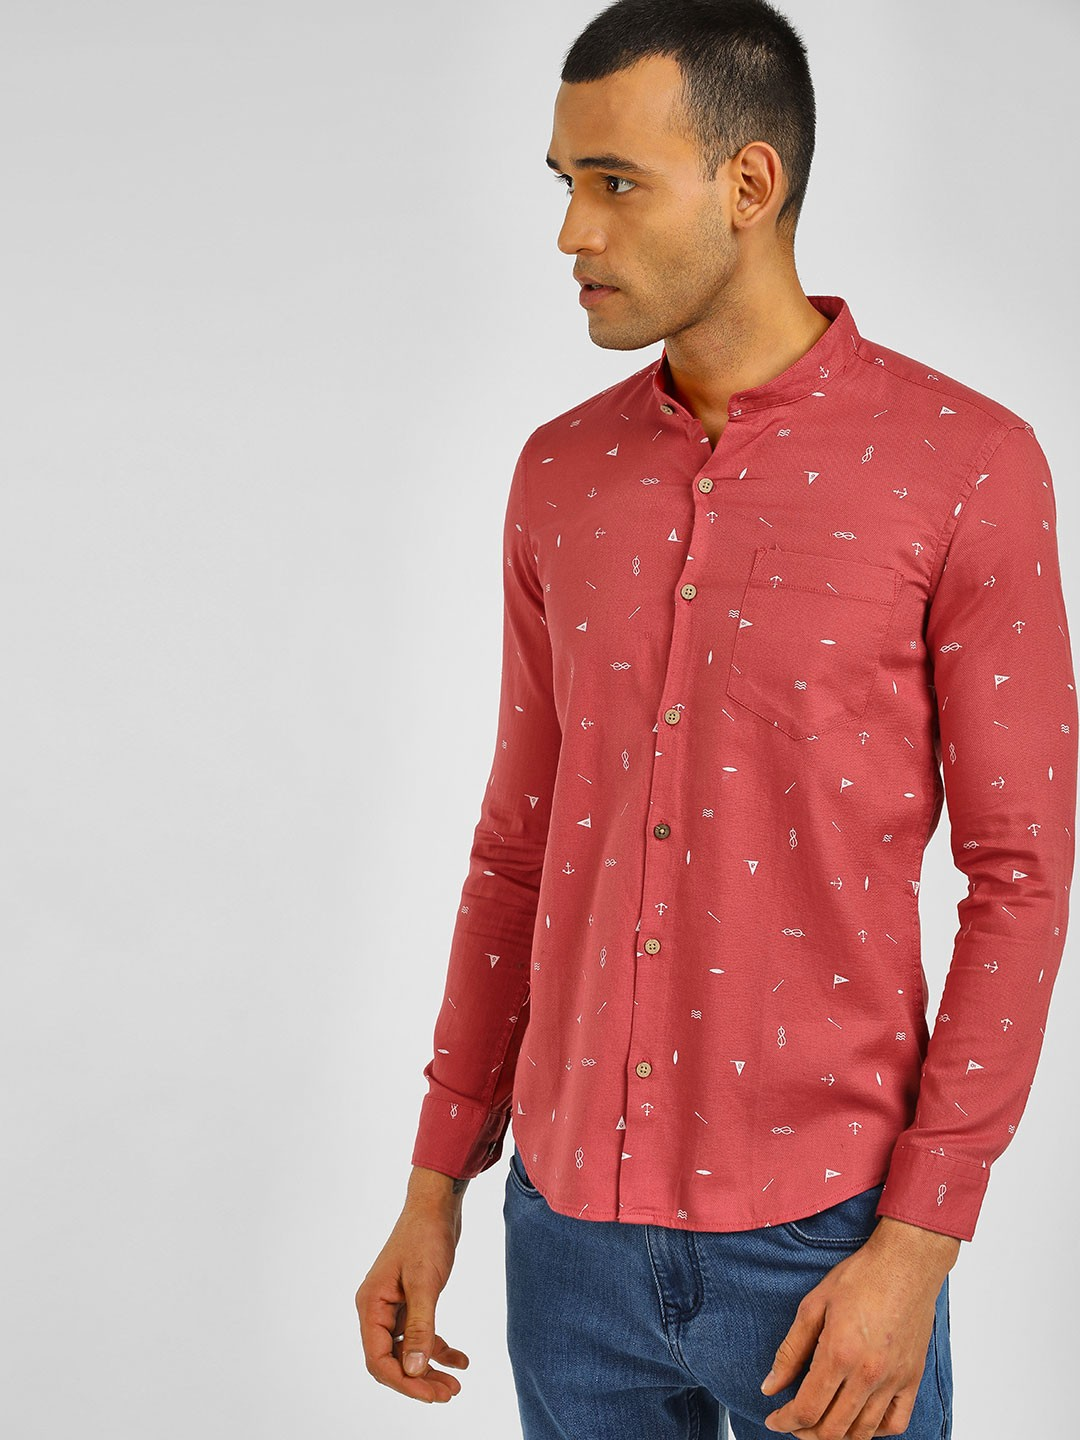 AMON Red Printed Slim Fit Shirt 1